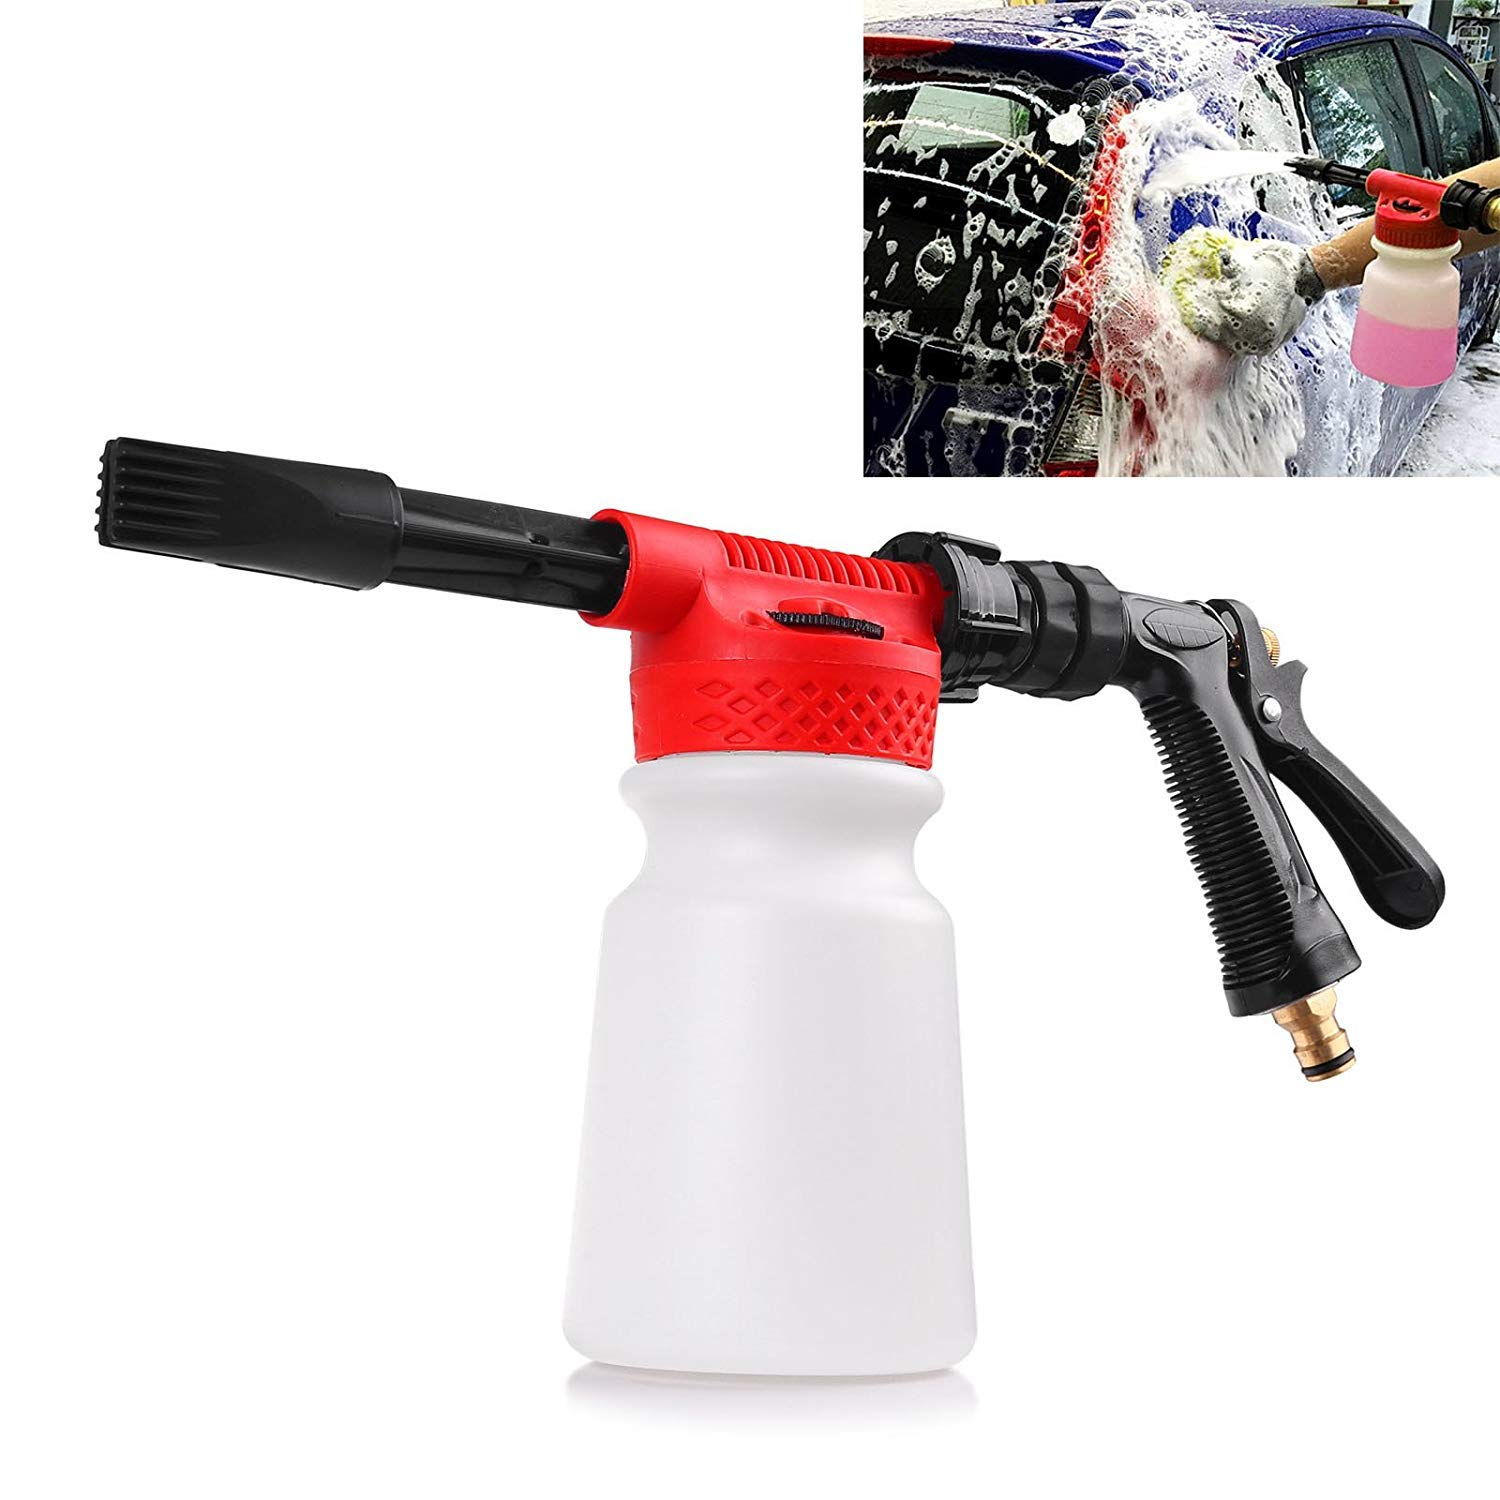 Houkiper Car Wash Foam Gun Soap,Car Foam Blaster Foam Sprayer Cleaning Gun Bottle,900ml Water Foam Shampoo Gun for Van Motorcycle Vehicle,Garden, Leak Free Connection